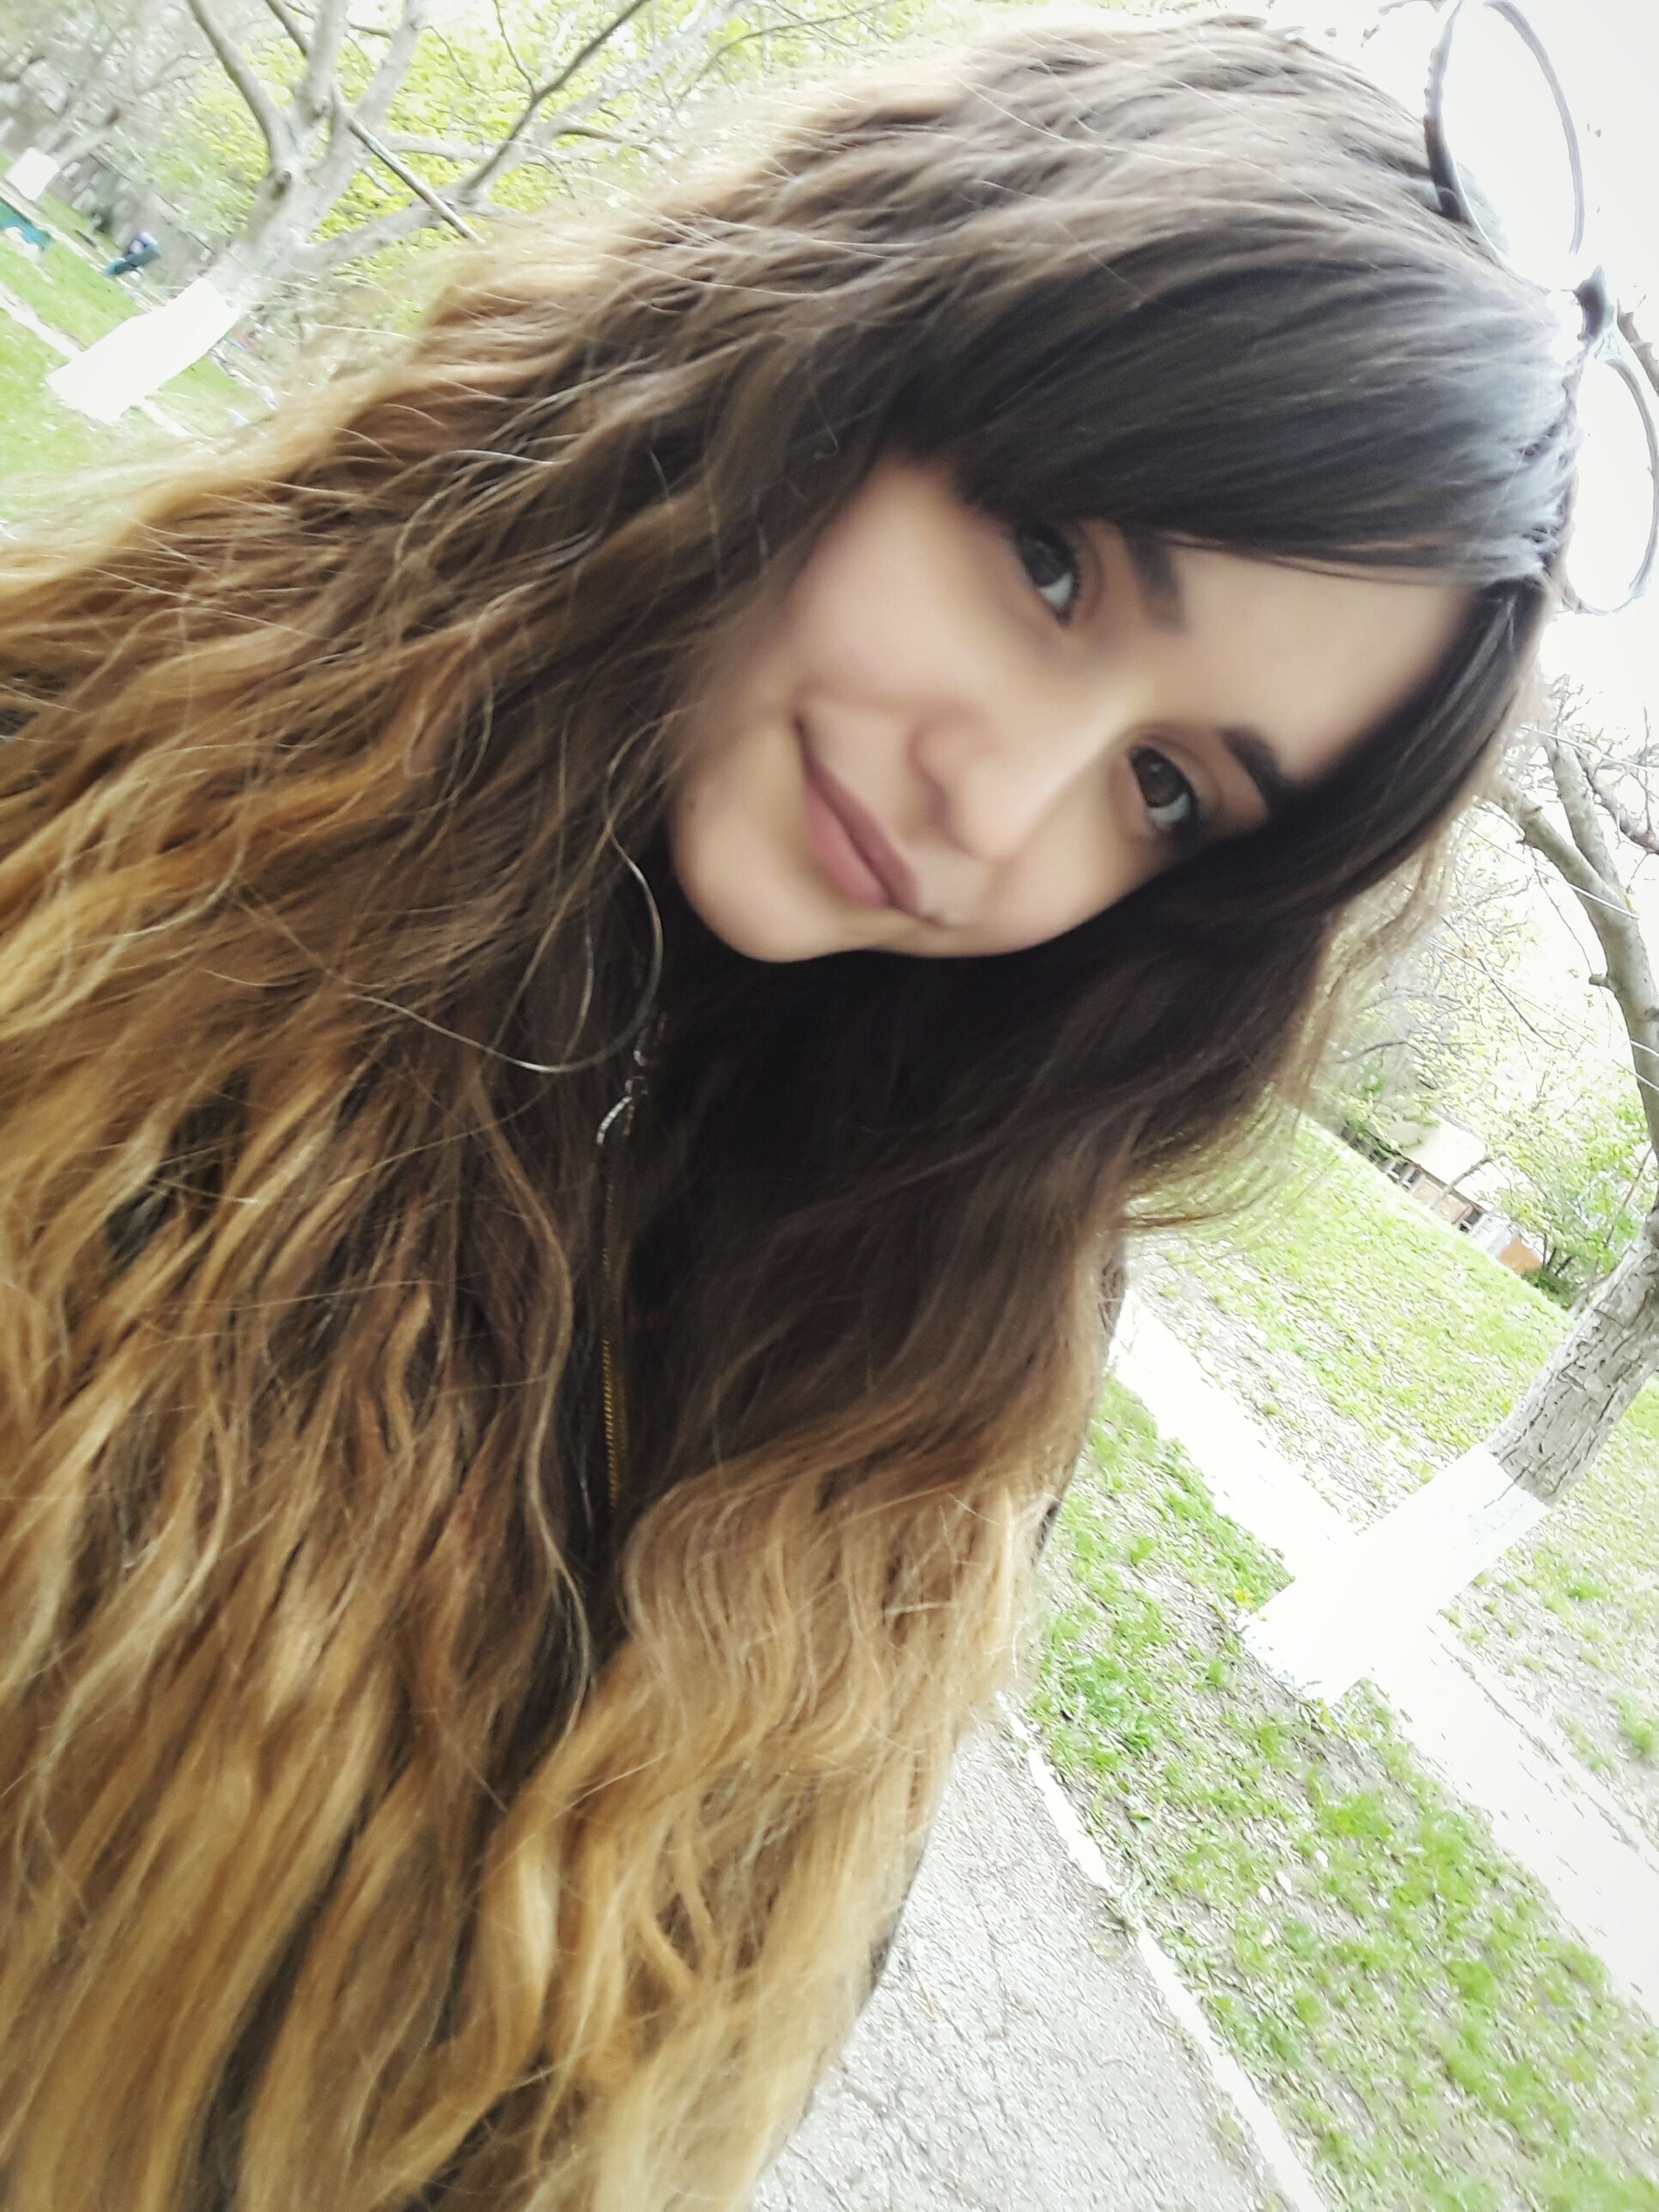 long hair, one person, portrait, teenager, young adult, beauty, young women, close-up, people, outdoors, day, adult